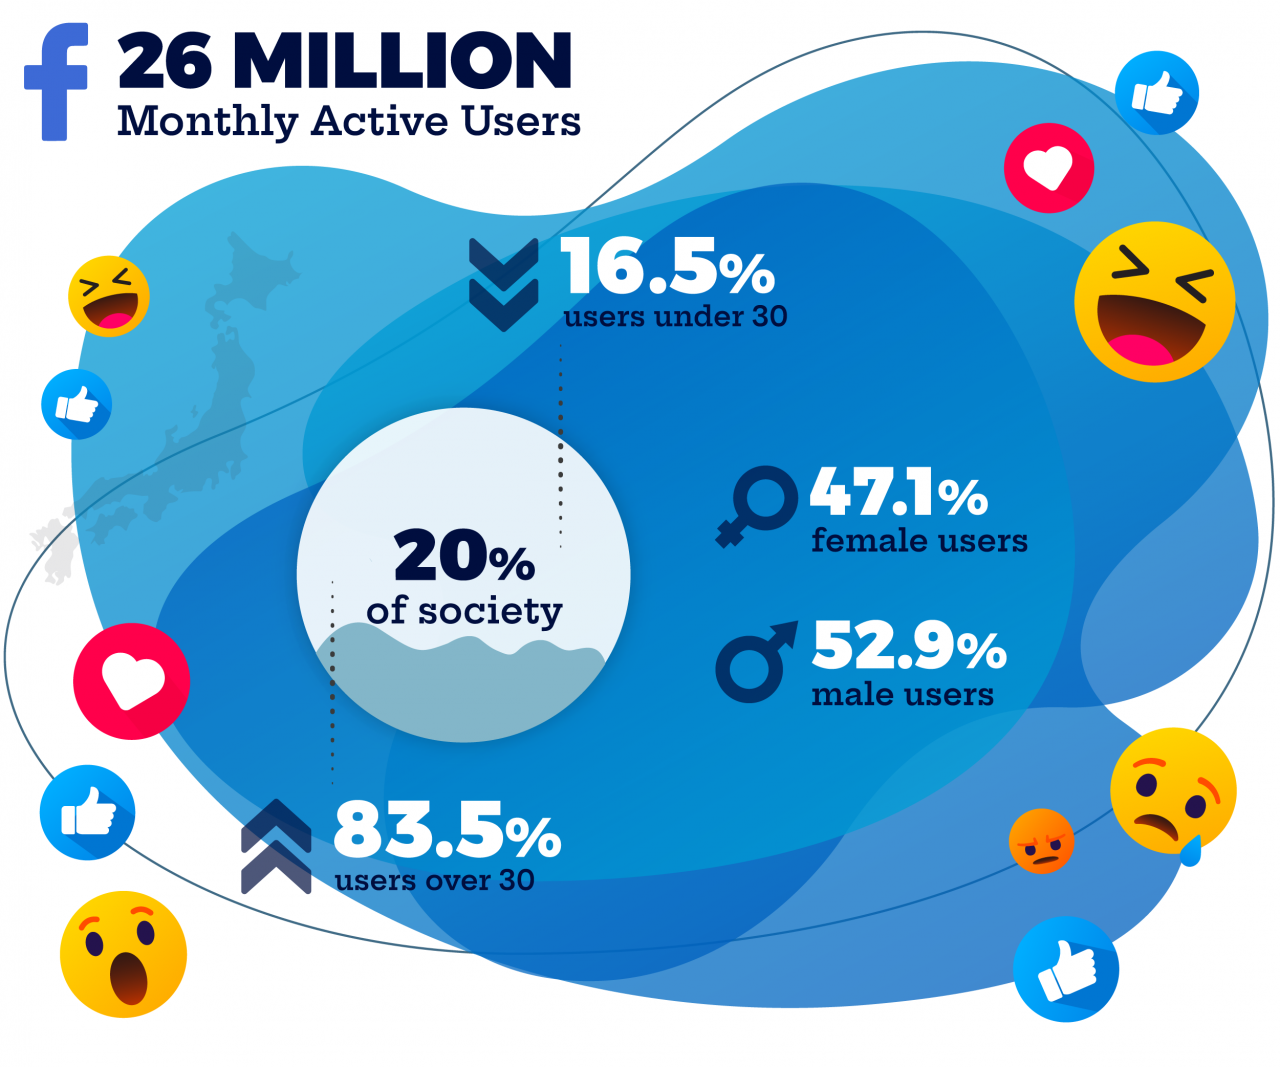 Japan's top social media platforms infographic about SNS Facebook